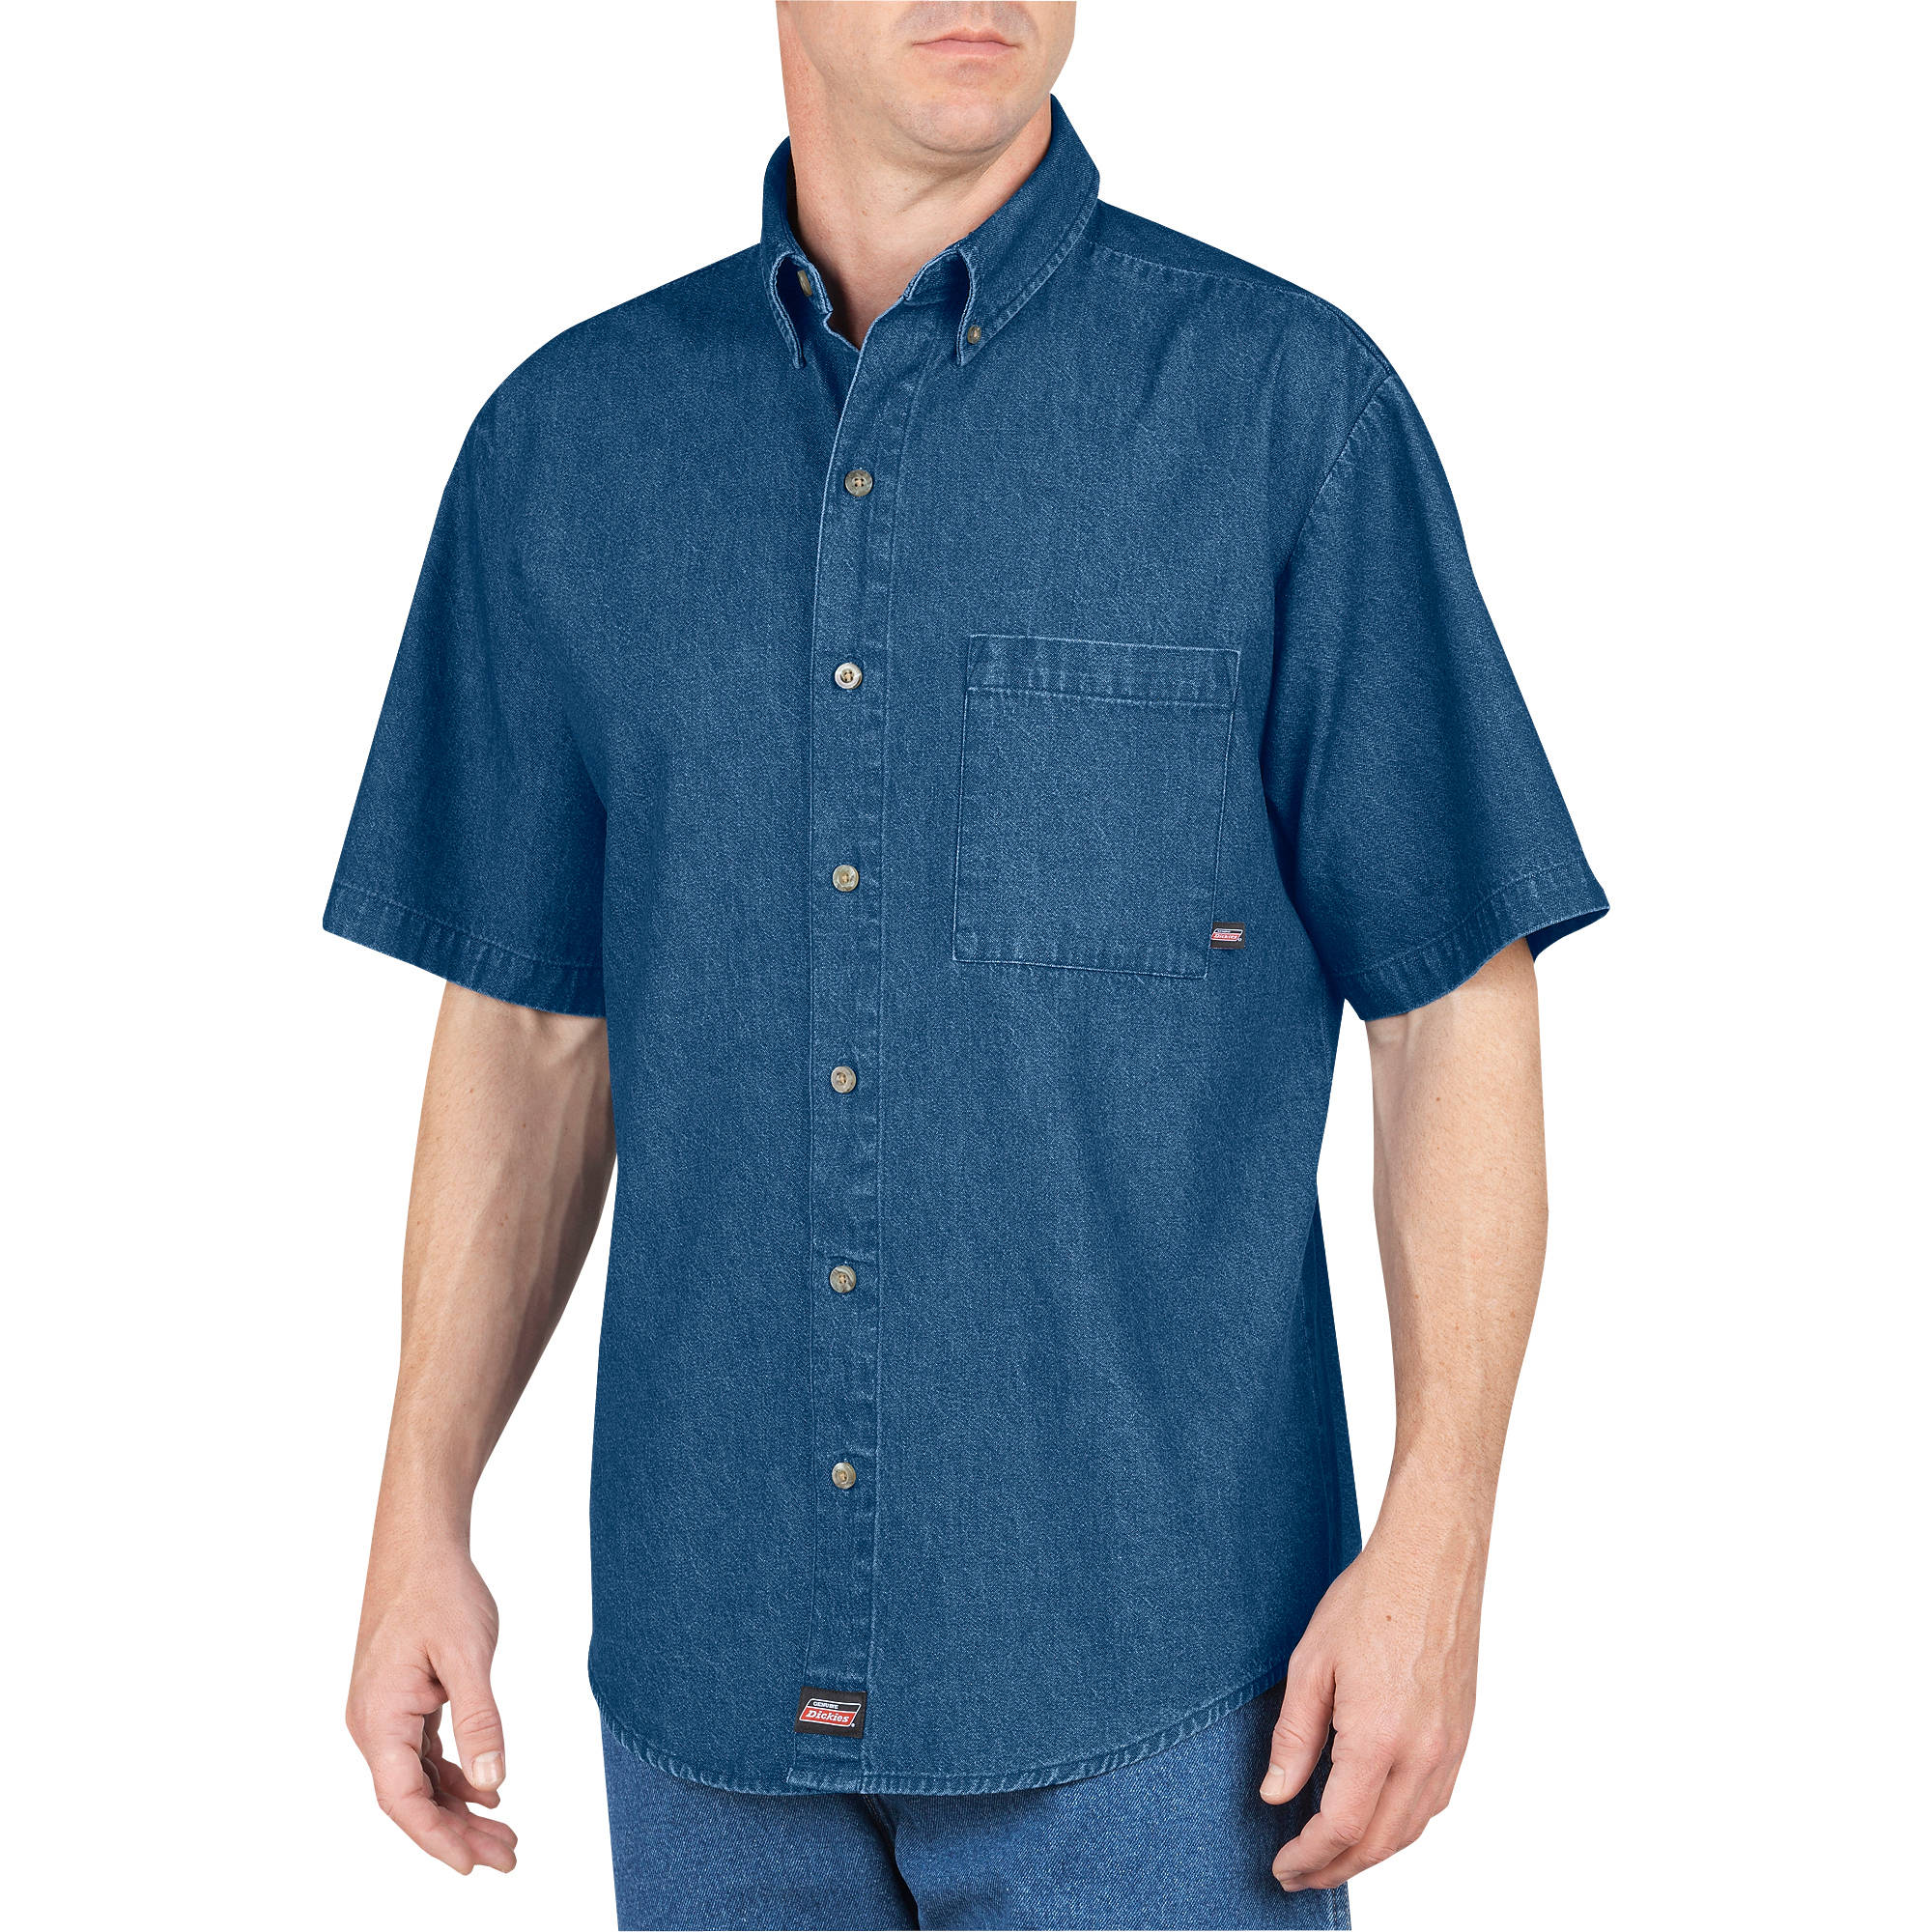 Genuine Dickies Men's Short Sleeve Denim Shirt